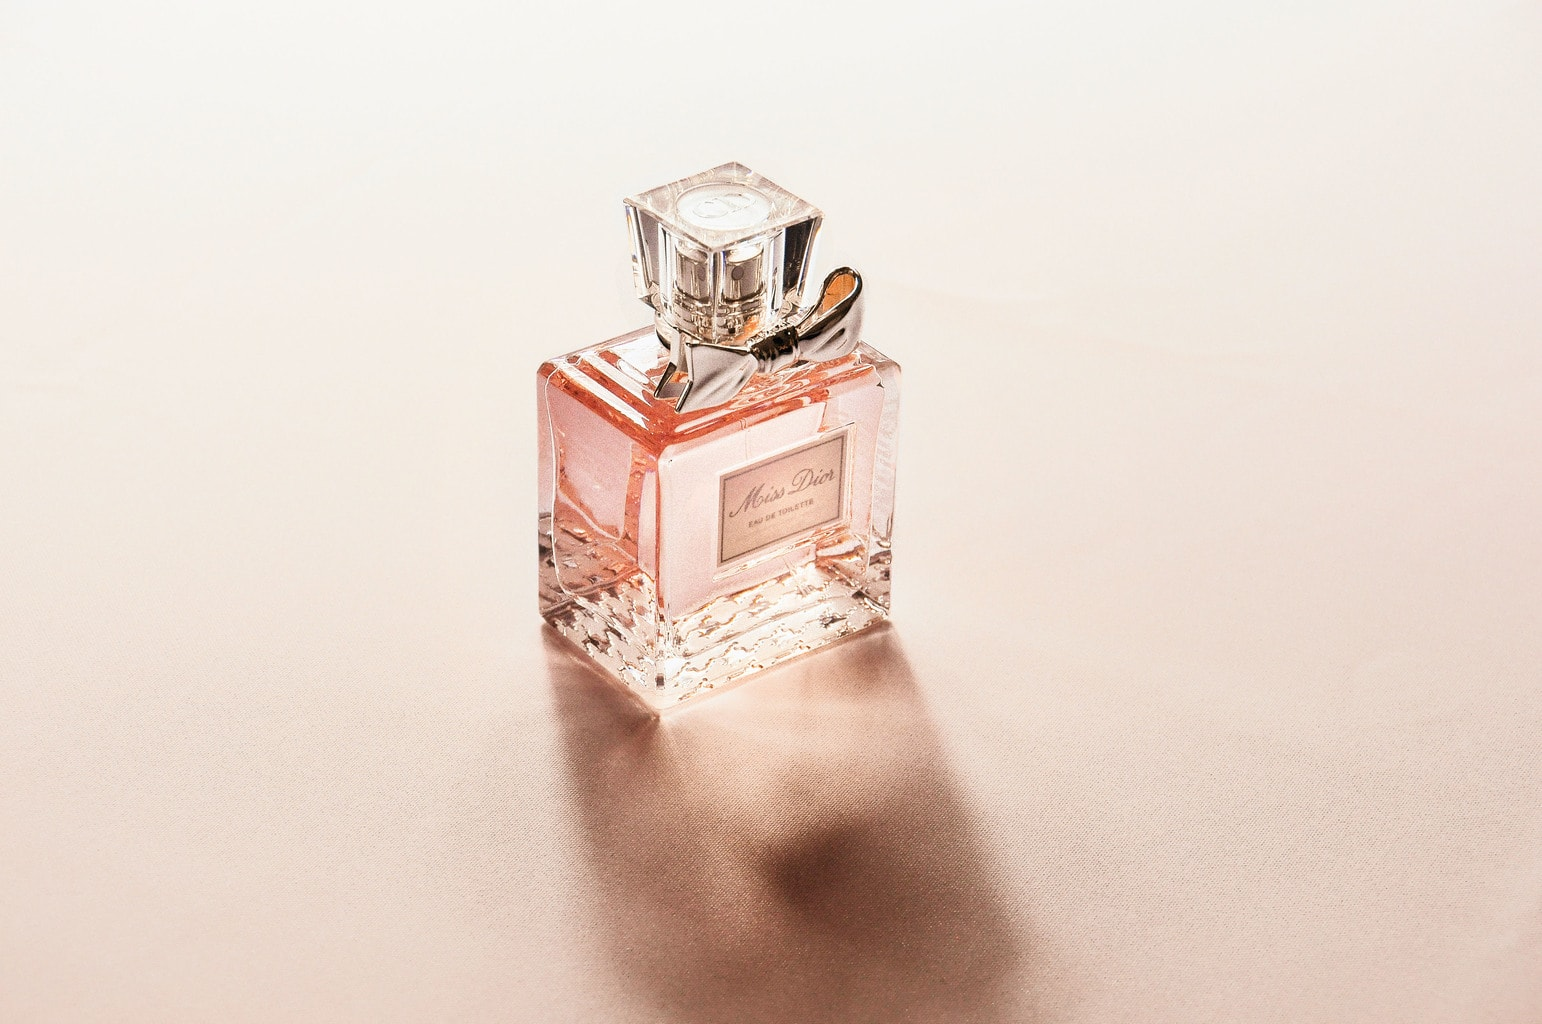 Perfume bottle in pink - Miss Dior